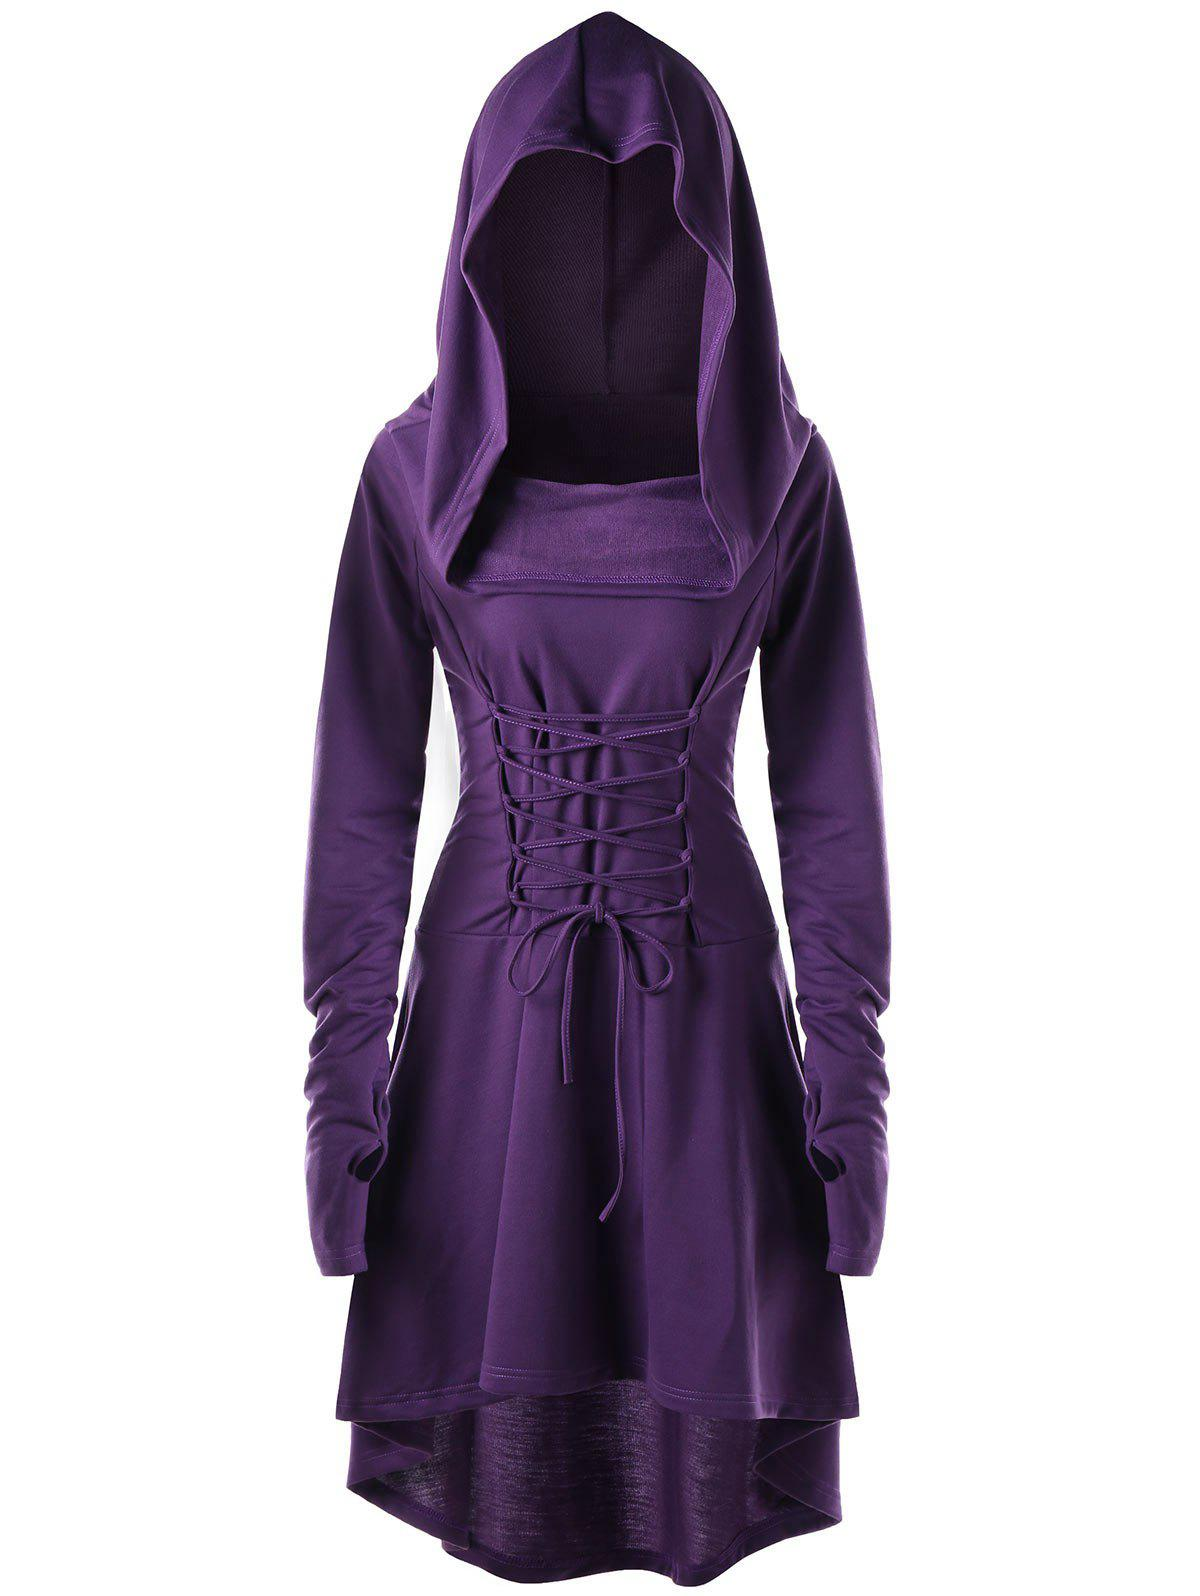 Hooded Lace Up High Low DressWOMEN<br><br>Size: L; Color: PURPLE; Style: Novelty; Material: Polyester,Spandex; Silhouette: Asymmetrical; Dresses Length: Mid-Calf; Neckline: Hooded; Sleeve Length: Long Sleeves; Embellishment: Criss-Cross; Pattern Type: Solid; With Belt: No; Season: Fall,Spring; Weight: 0.5500kg; Package Contents: 1 x Dress;